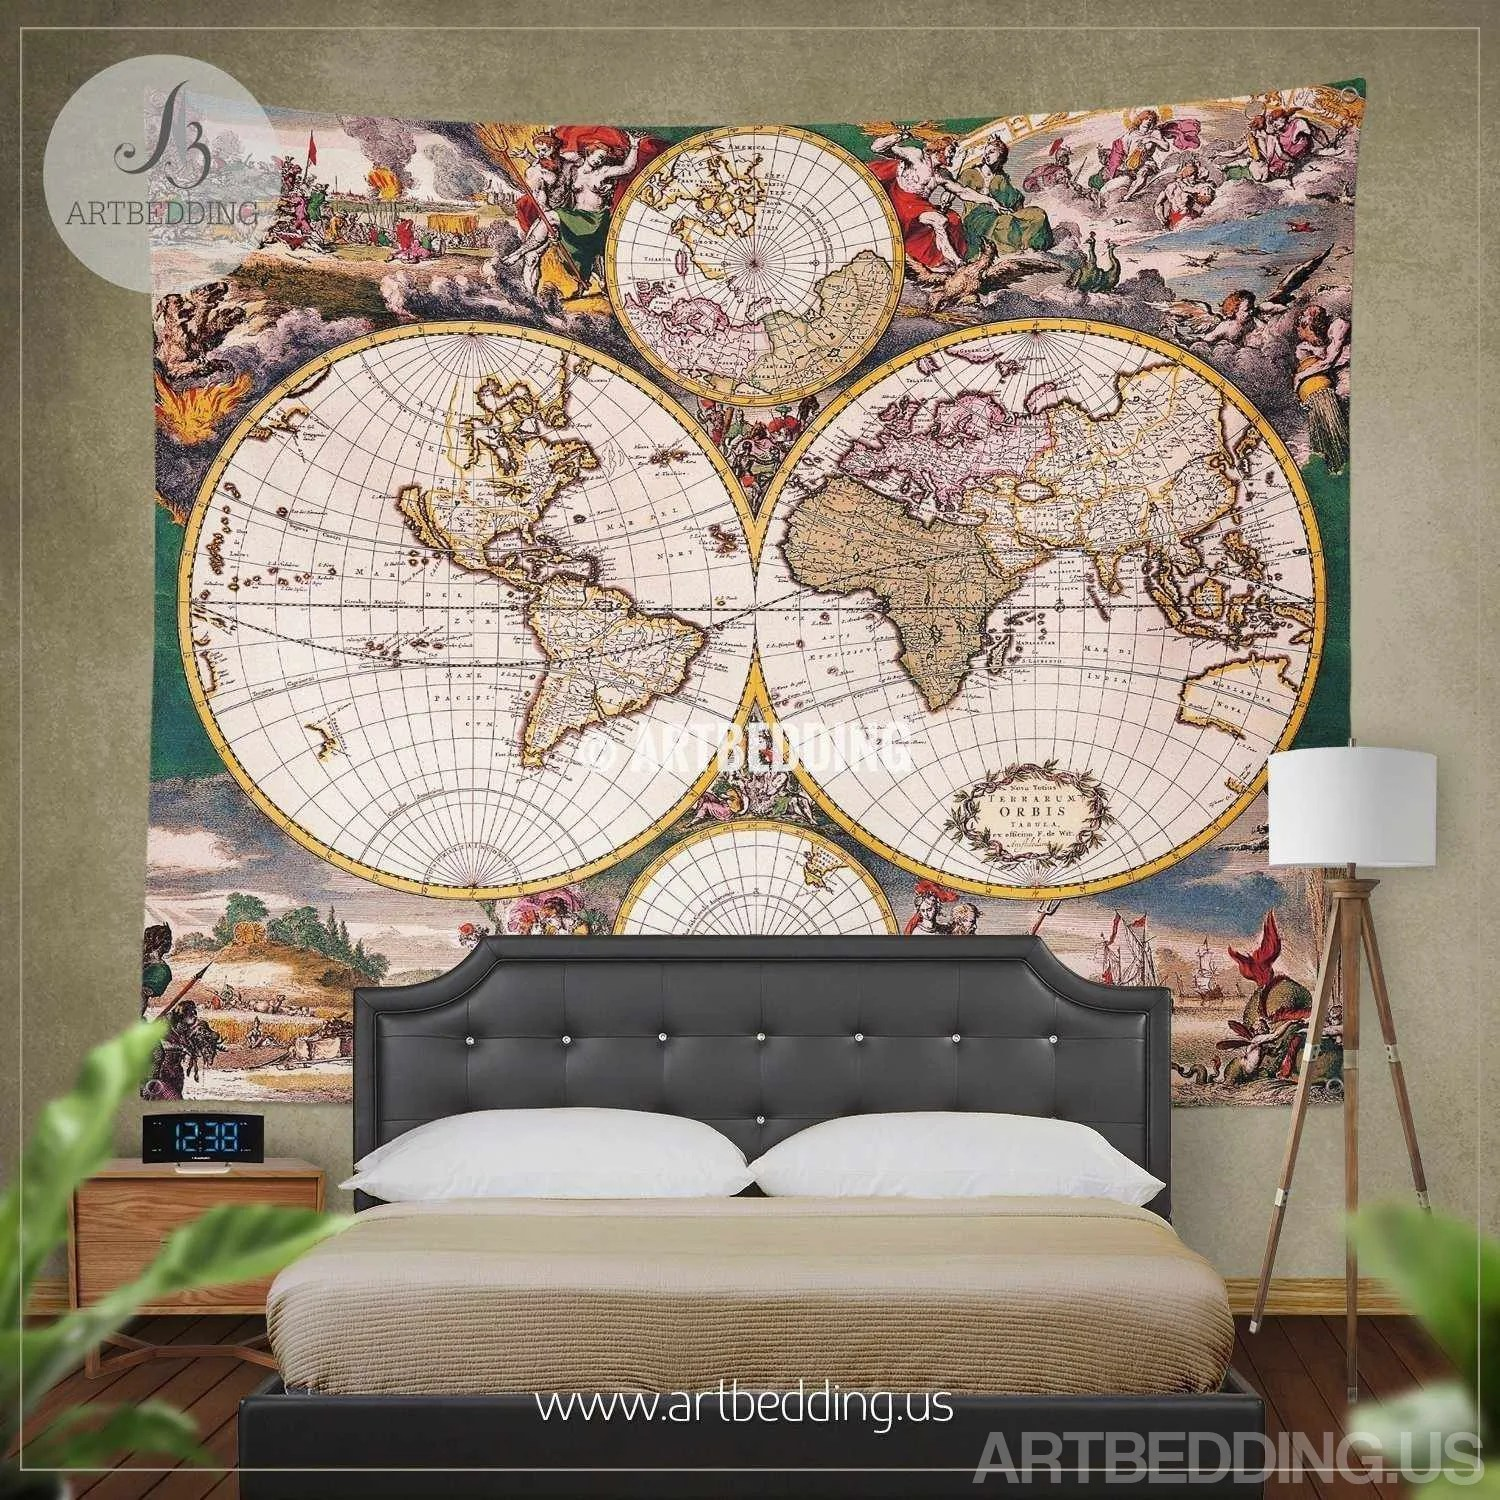 Old World Map Bedding Vintage 18th Century Hemisphere